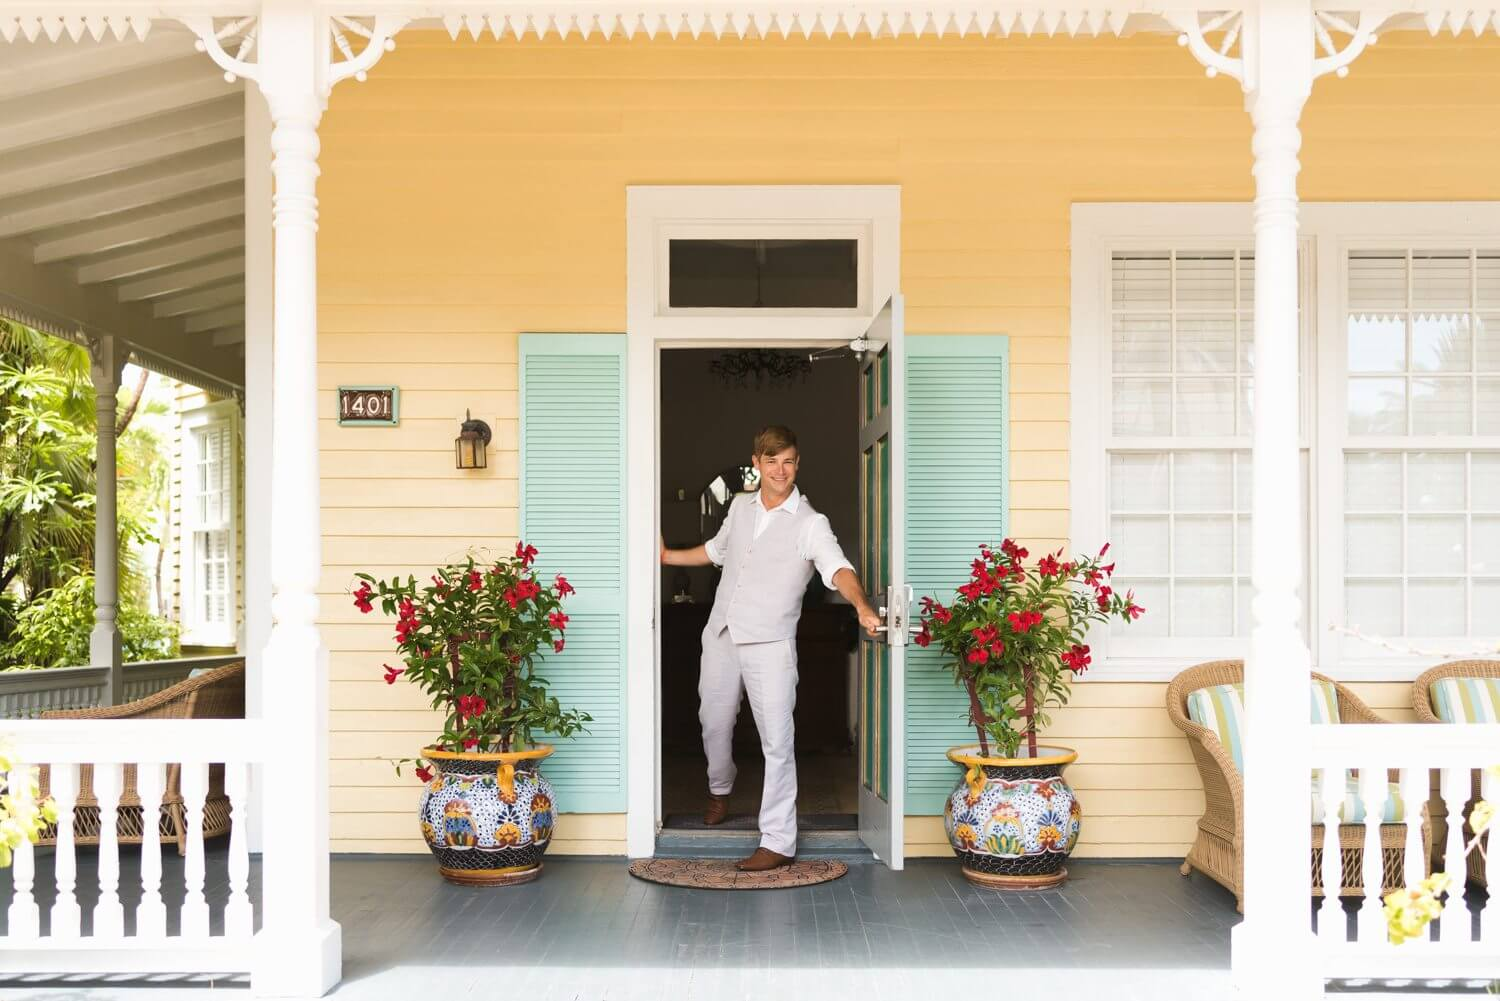 Freas Photography Southernmost House Wedding 16 - Boho Styled Key West Wedding at the Southernmost House in Key West, Florida